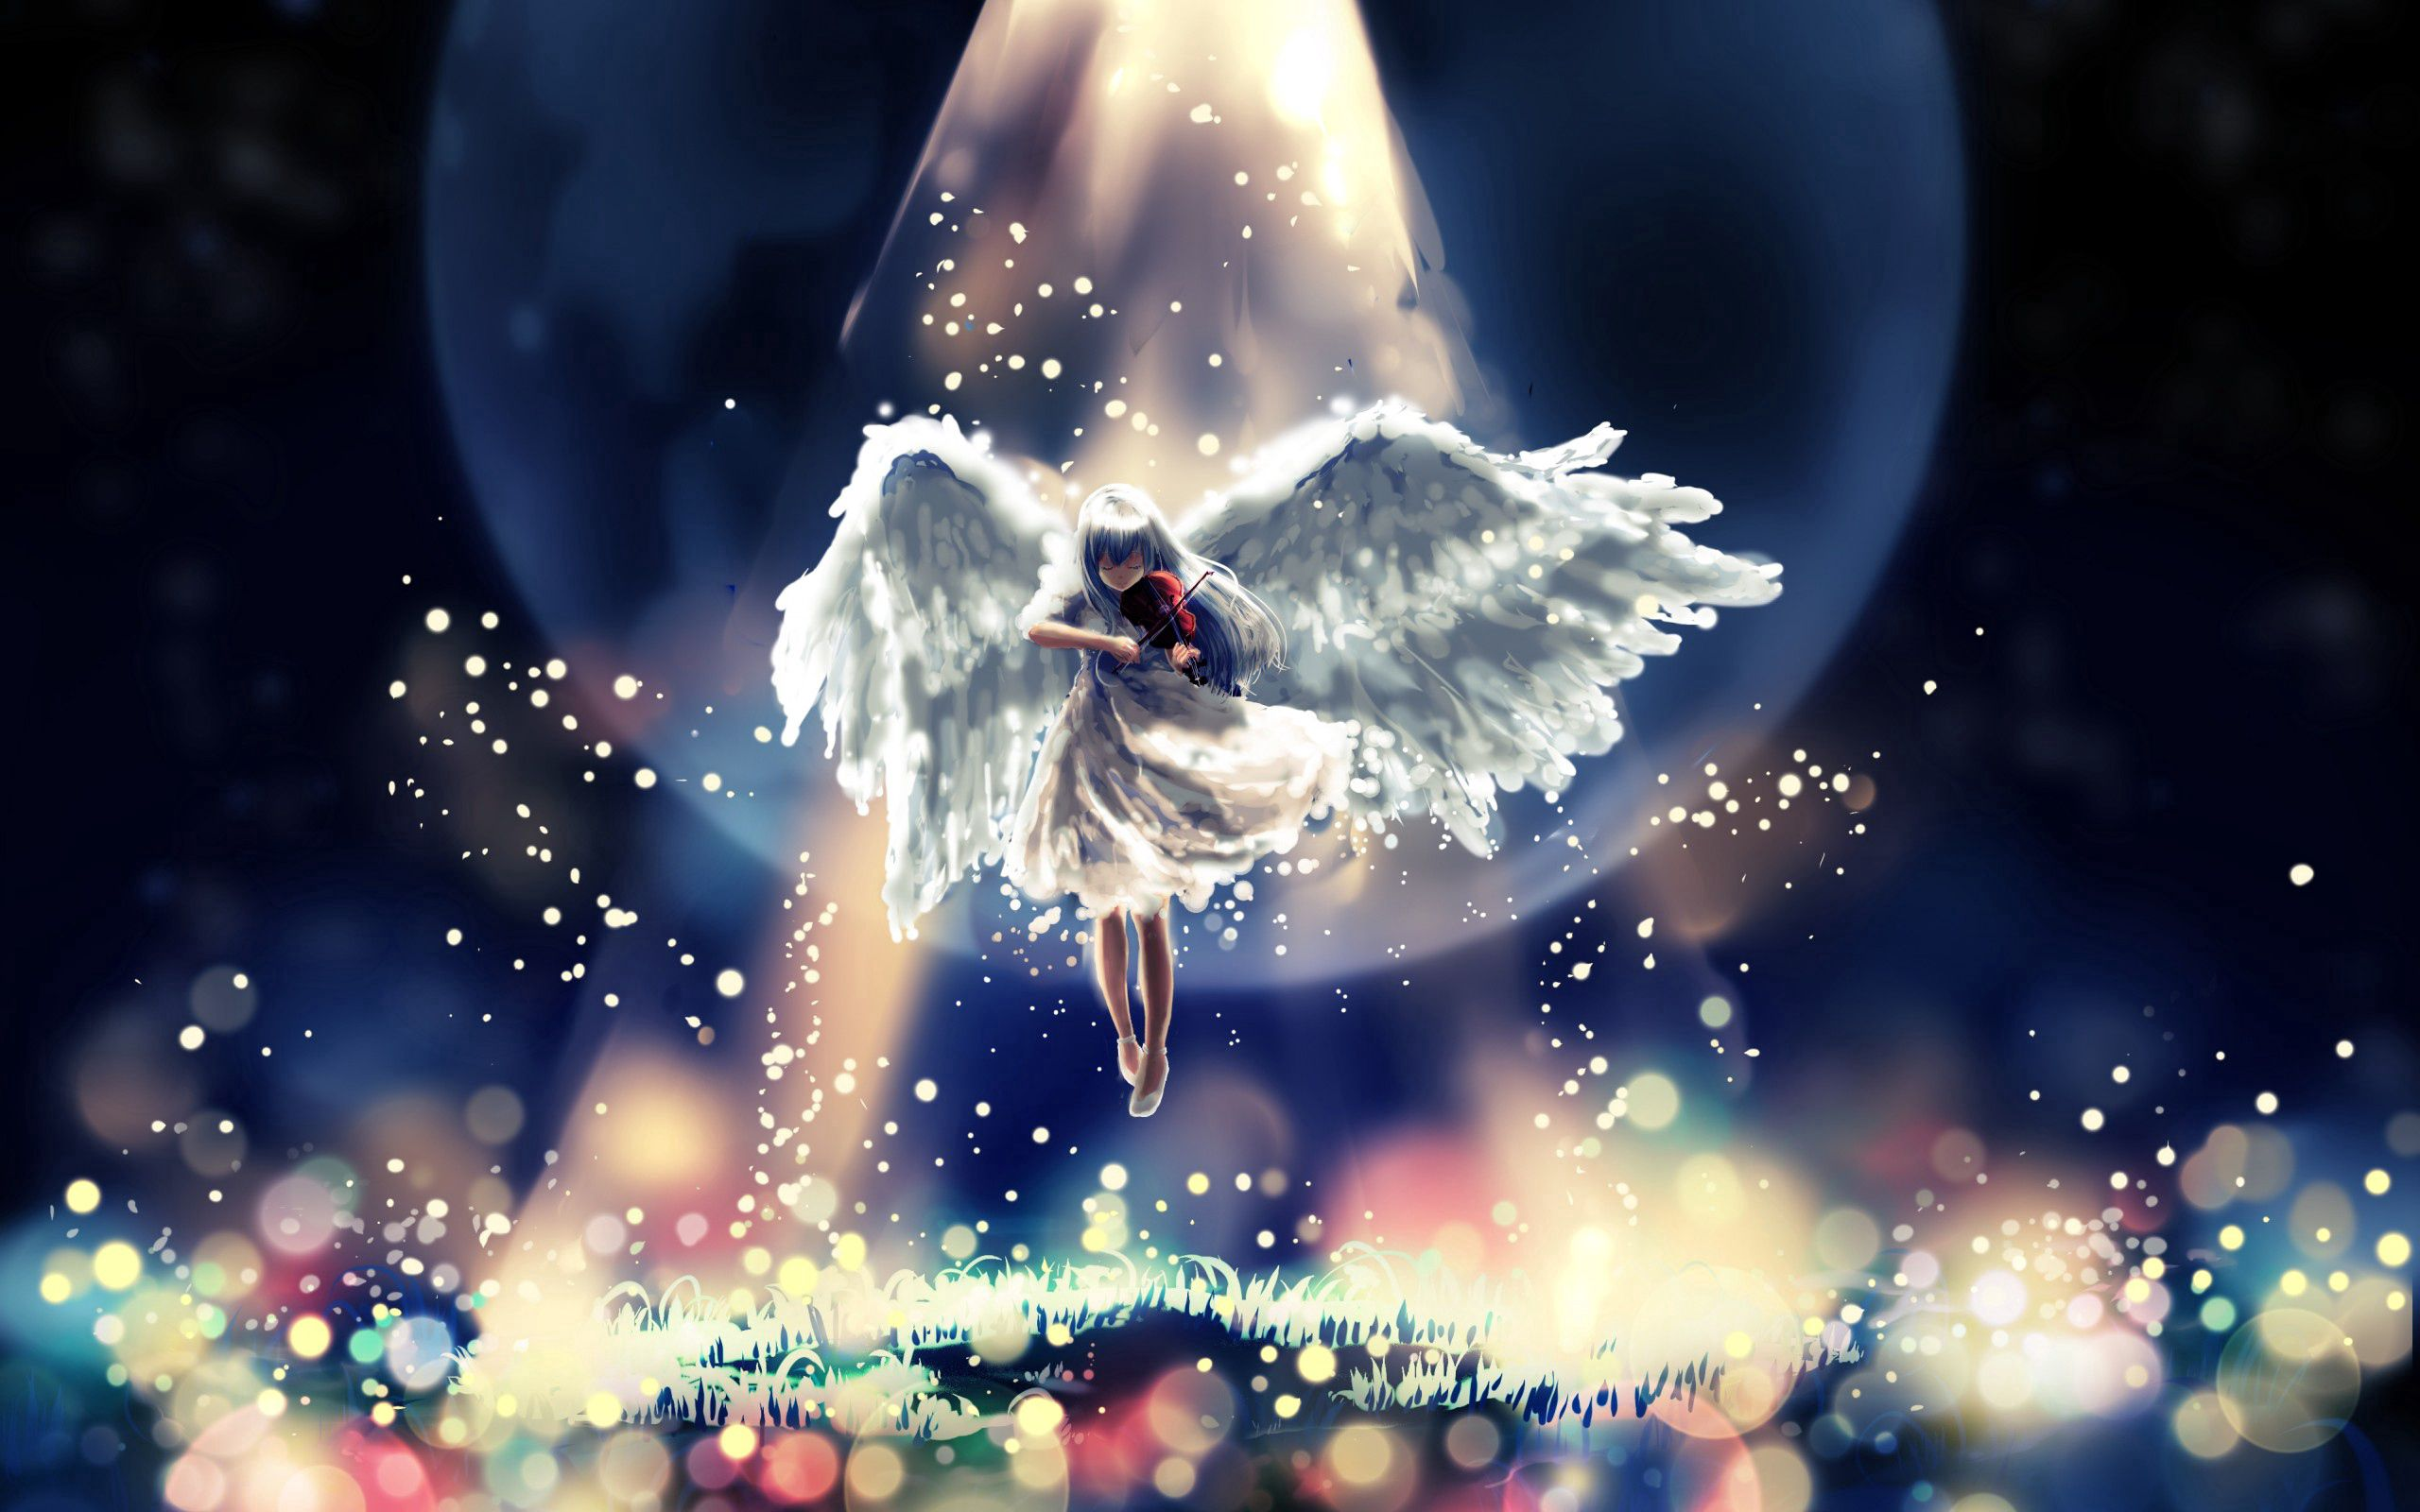 156806 download wallpaper Abstract, Angel, Flight, Sky, Handsomely, It's Beautiful screensavers and pictures for free